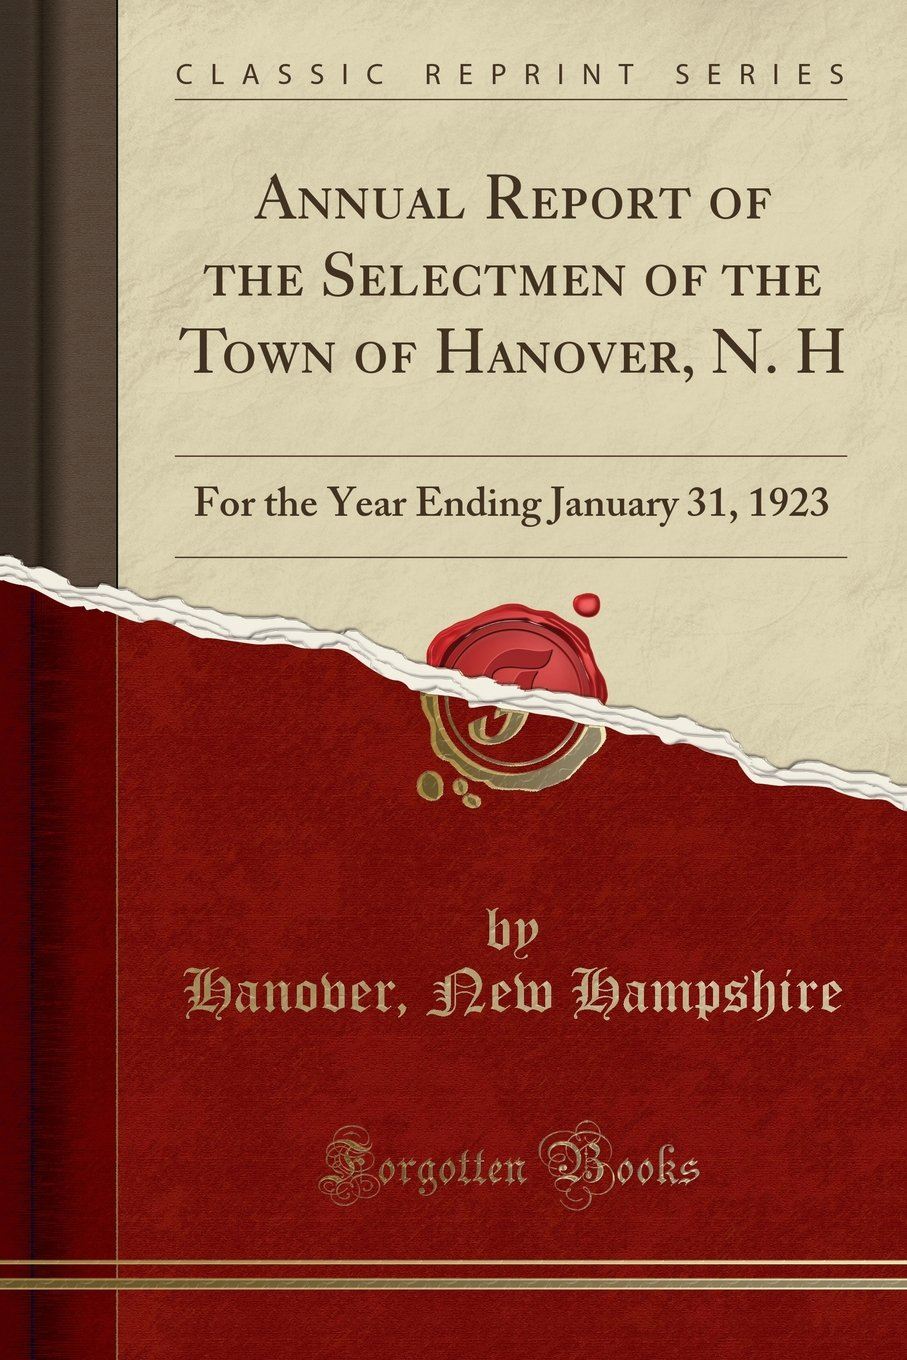 Read Online Annual Report of the Selectmen of the Town of Hanover, N. H: For the Year Ending January 31, 1923 (Classic Reprint) PDF